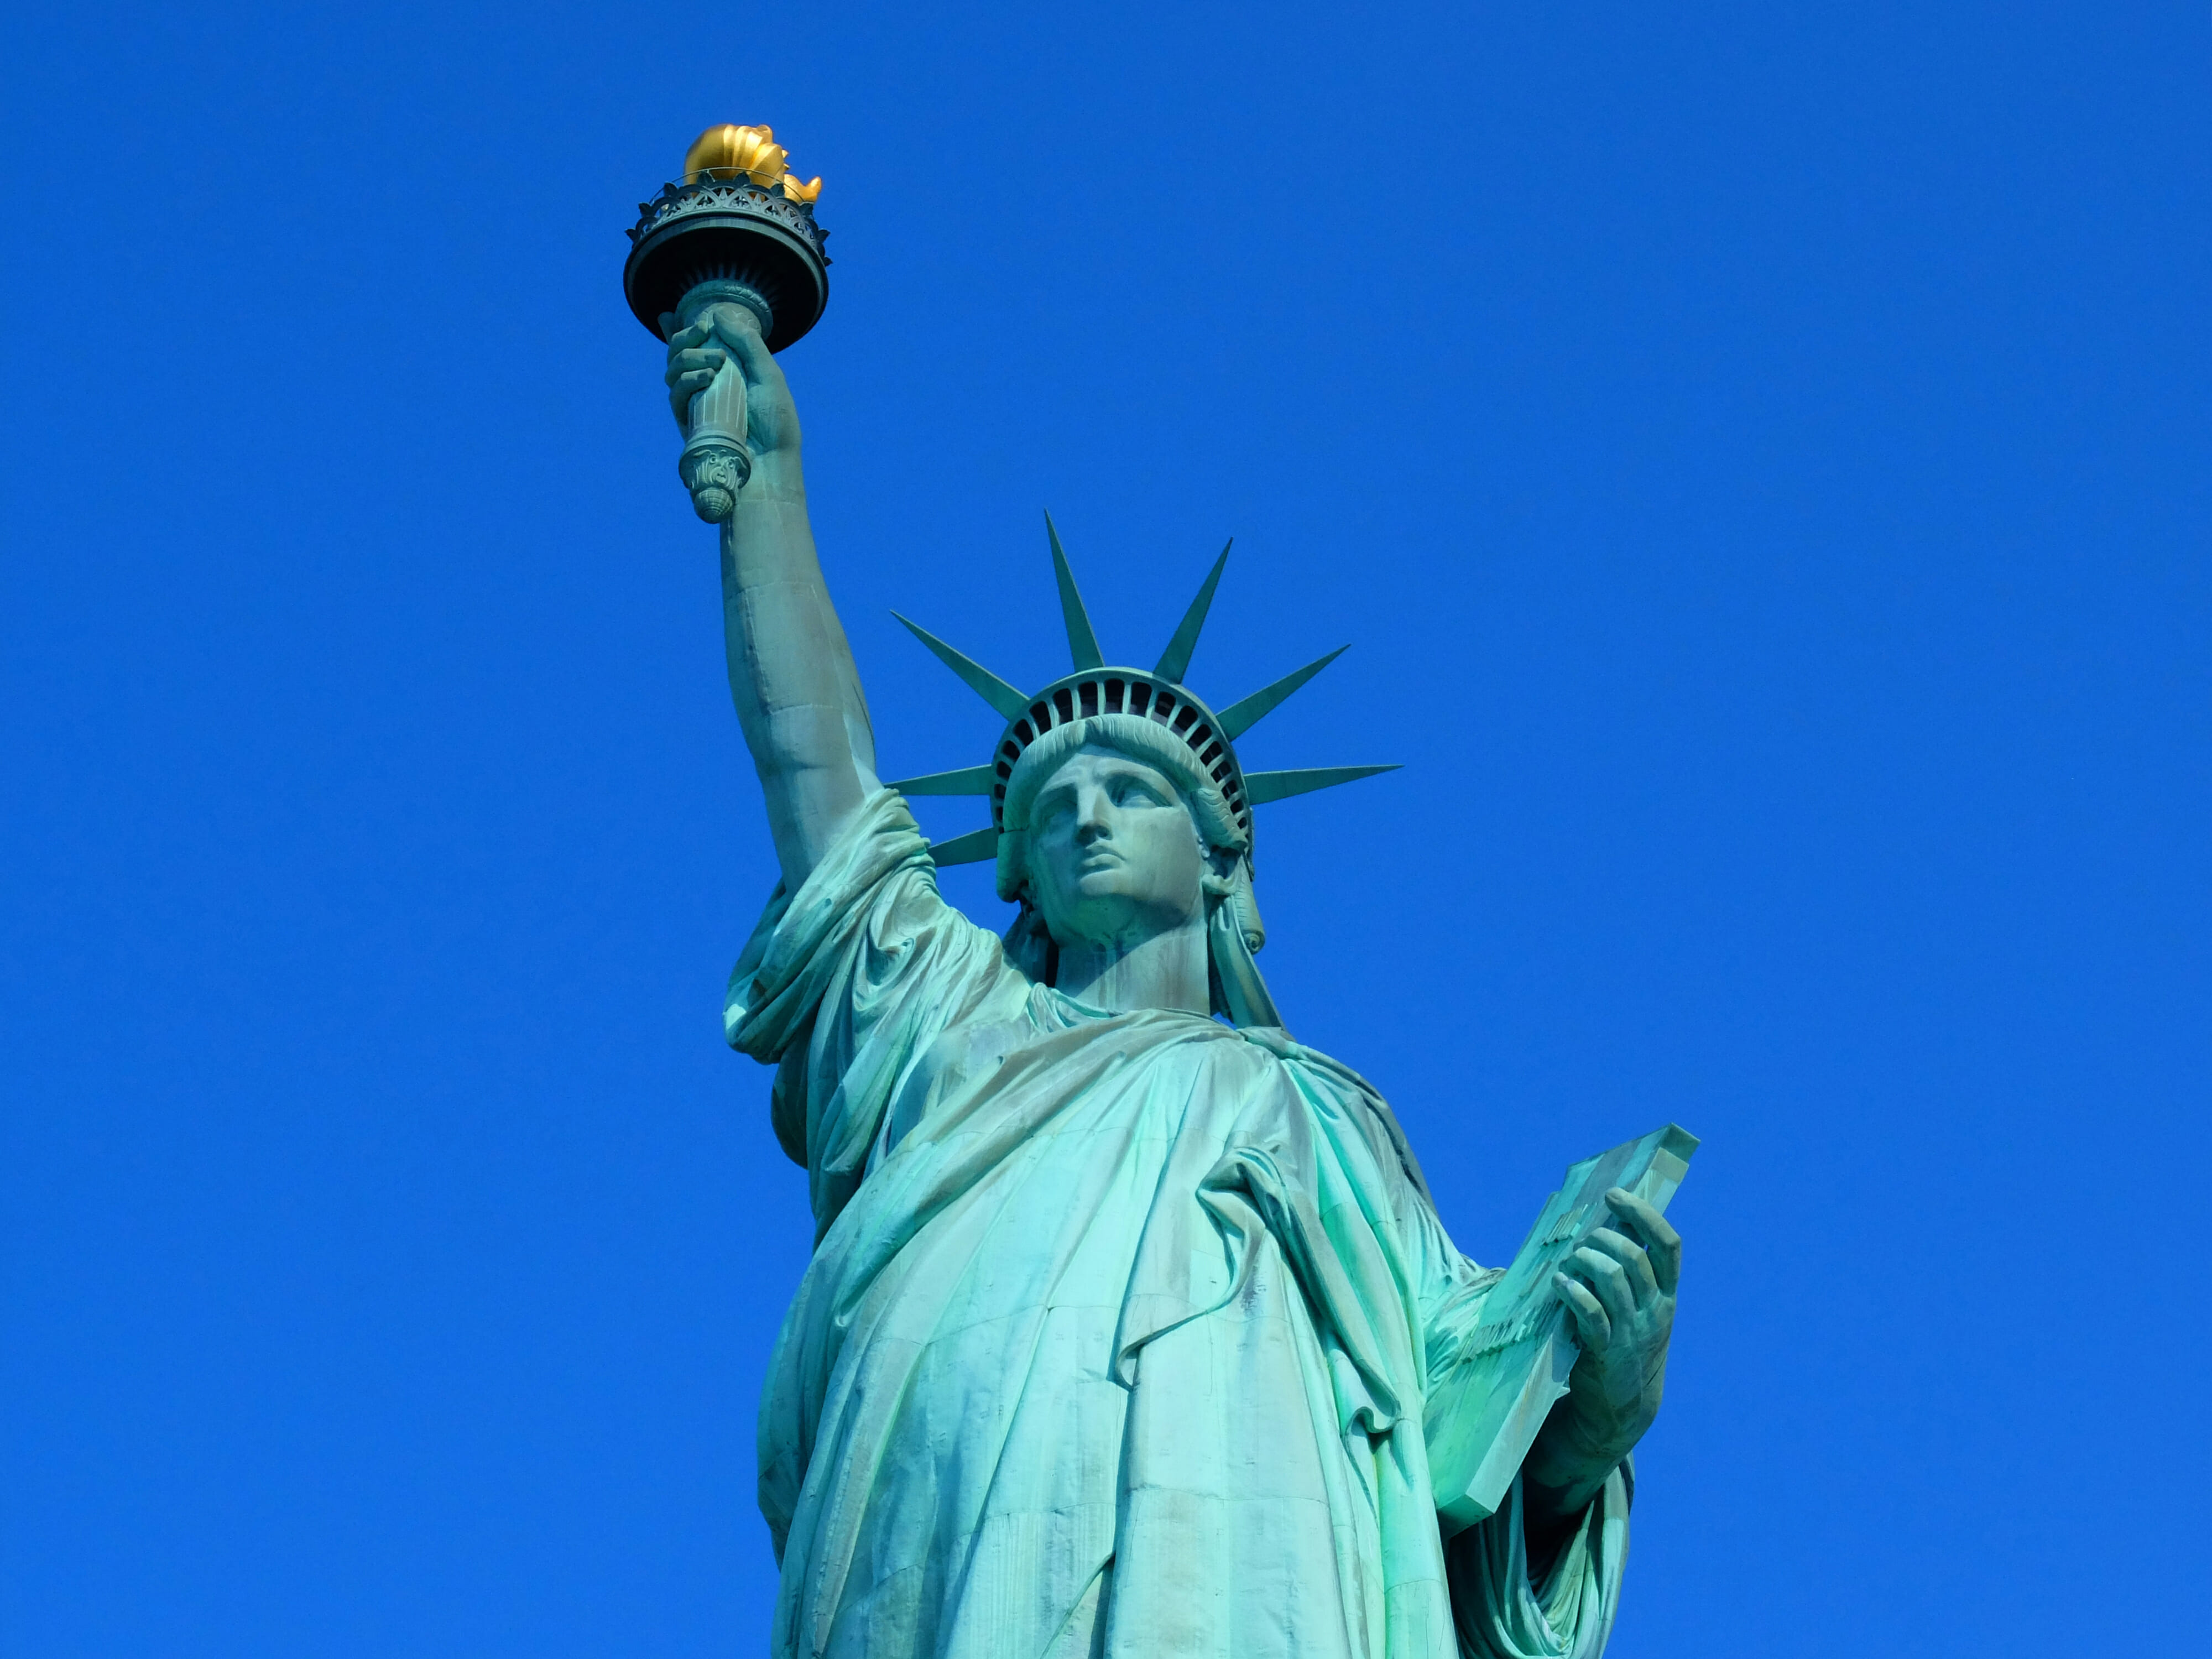 Statue of Liberty NYC – High Quality Wallpaper